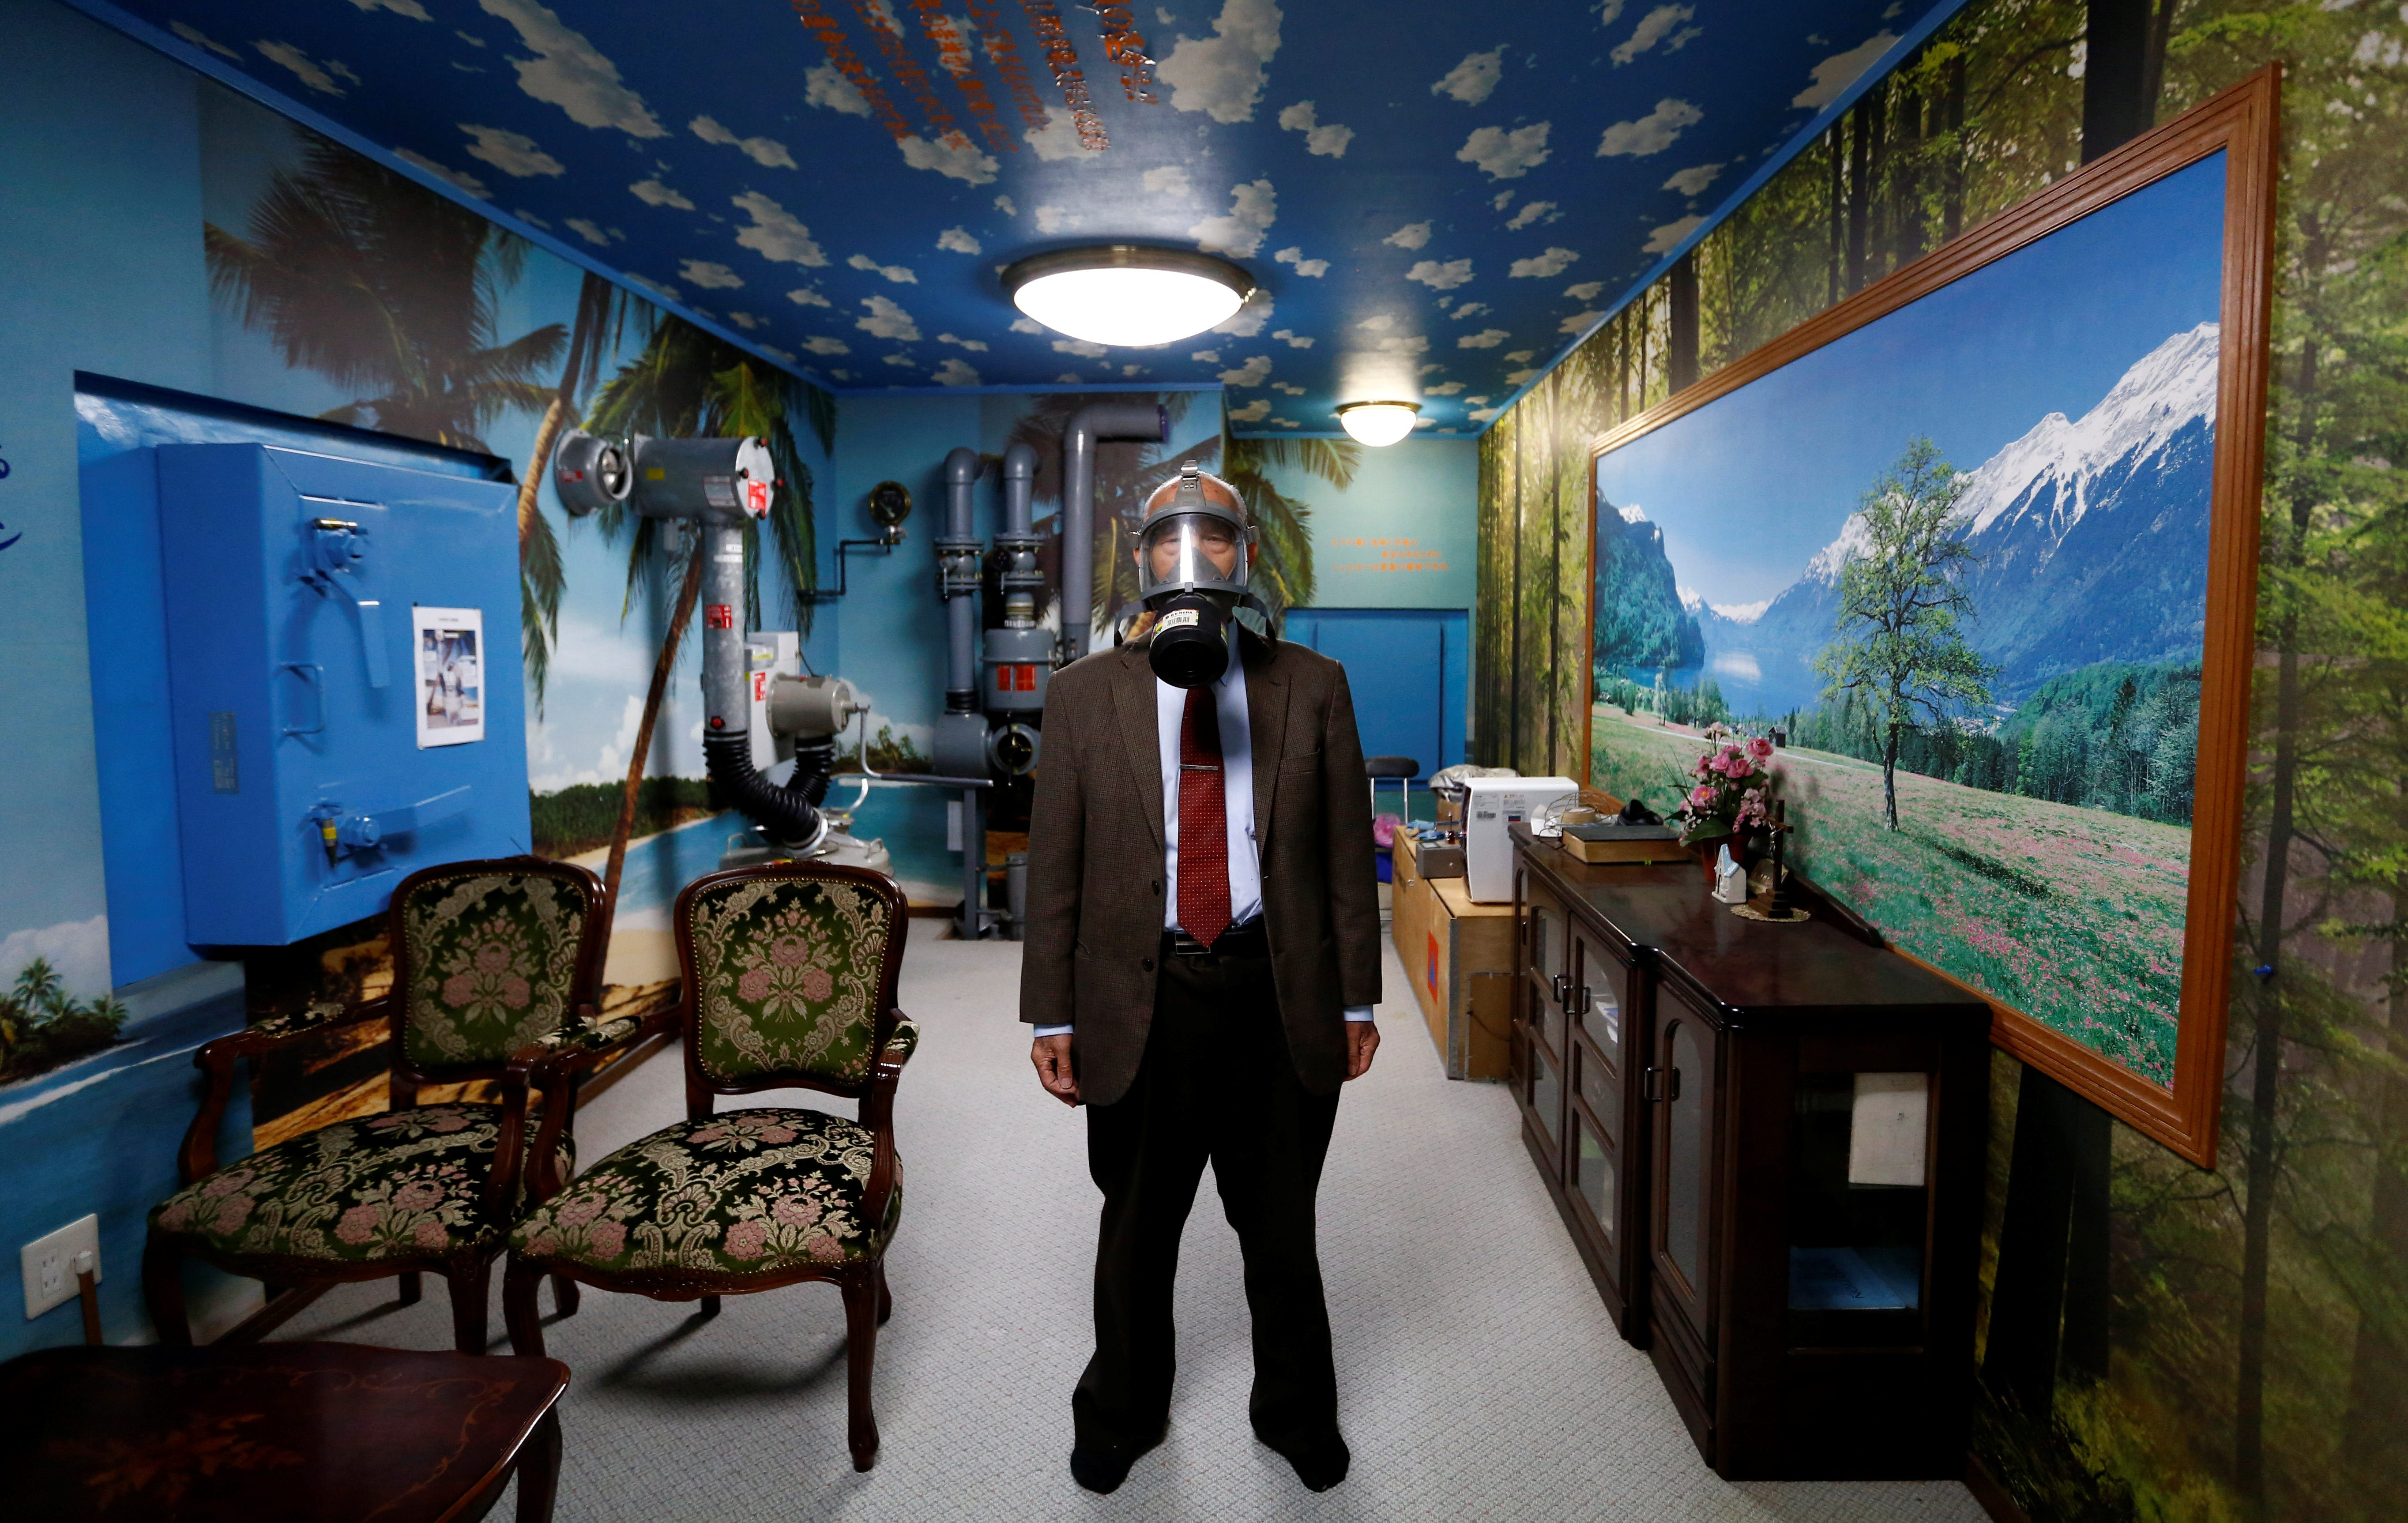 Seiichiro Nishimoto, CEO of Shelter Co., poses wearing a gas mask at a model room for the companyÕs nuclear shelters in the basement of his house in Osaka